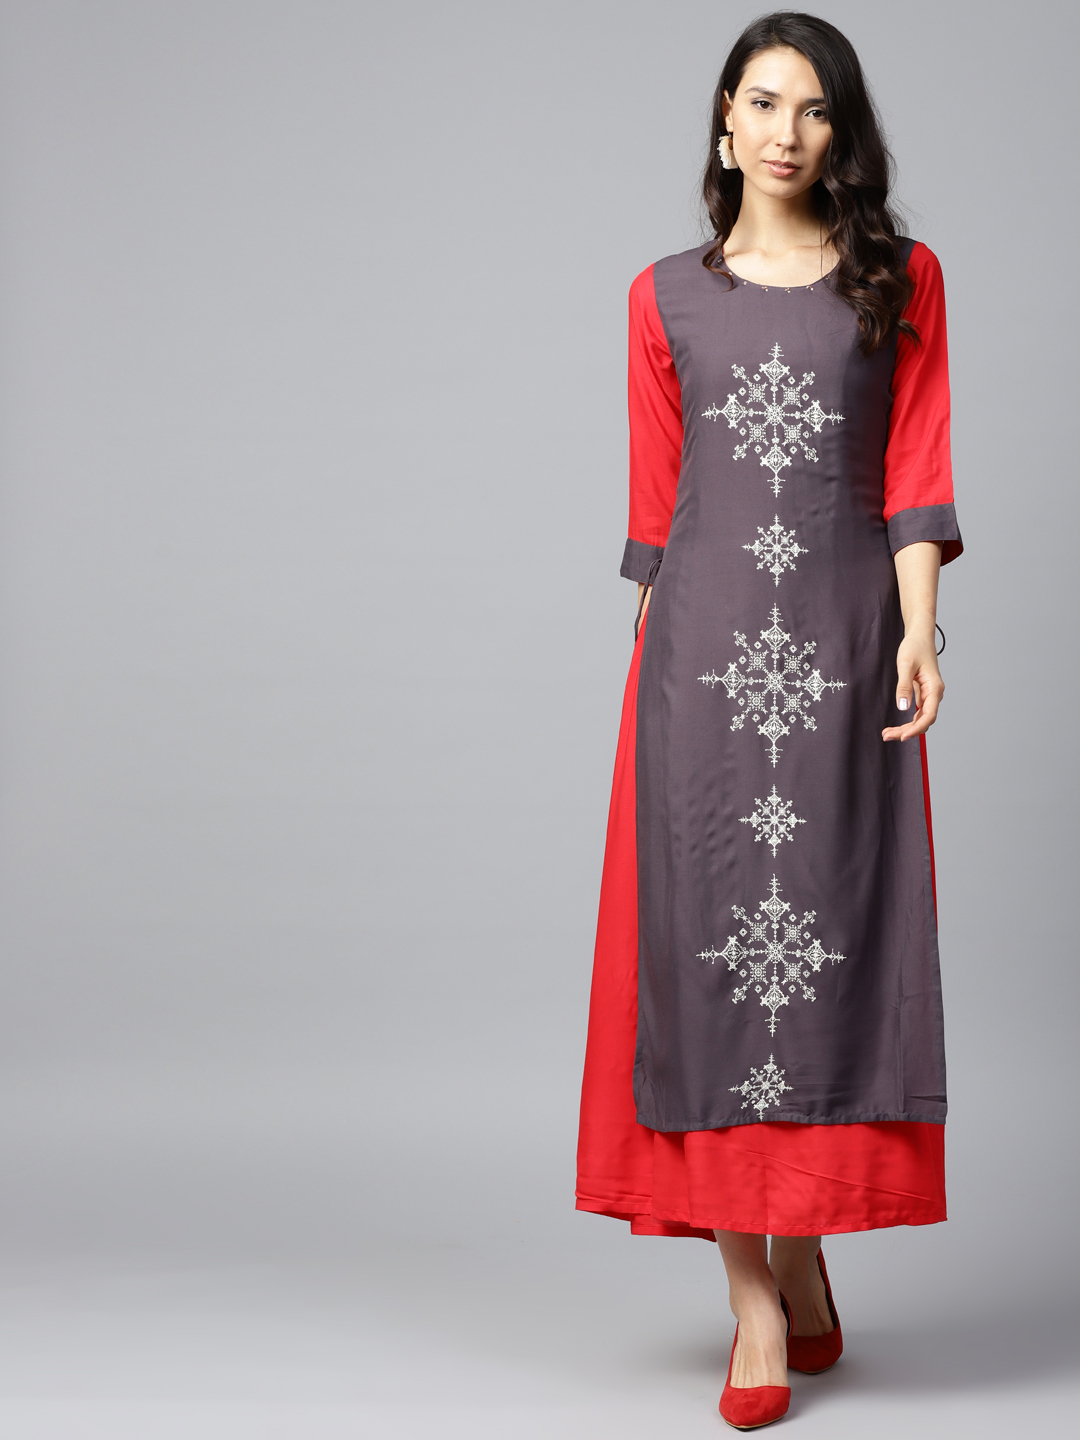 Shree Women Grey & Red Printed A-Line Layered Dress Price in India